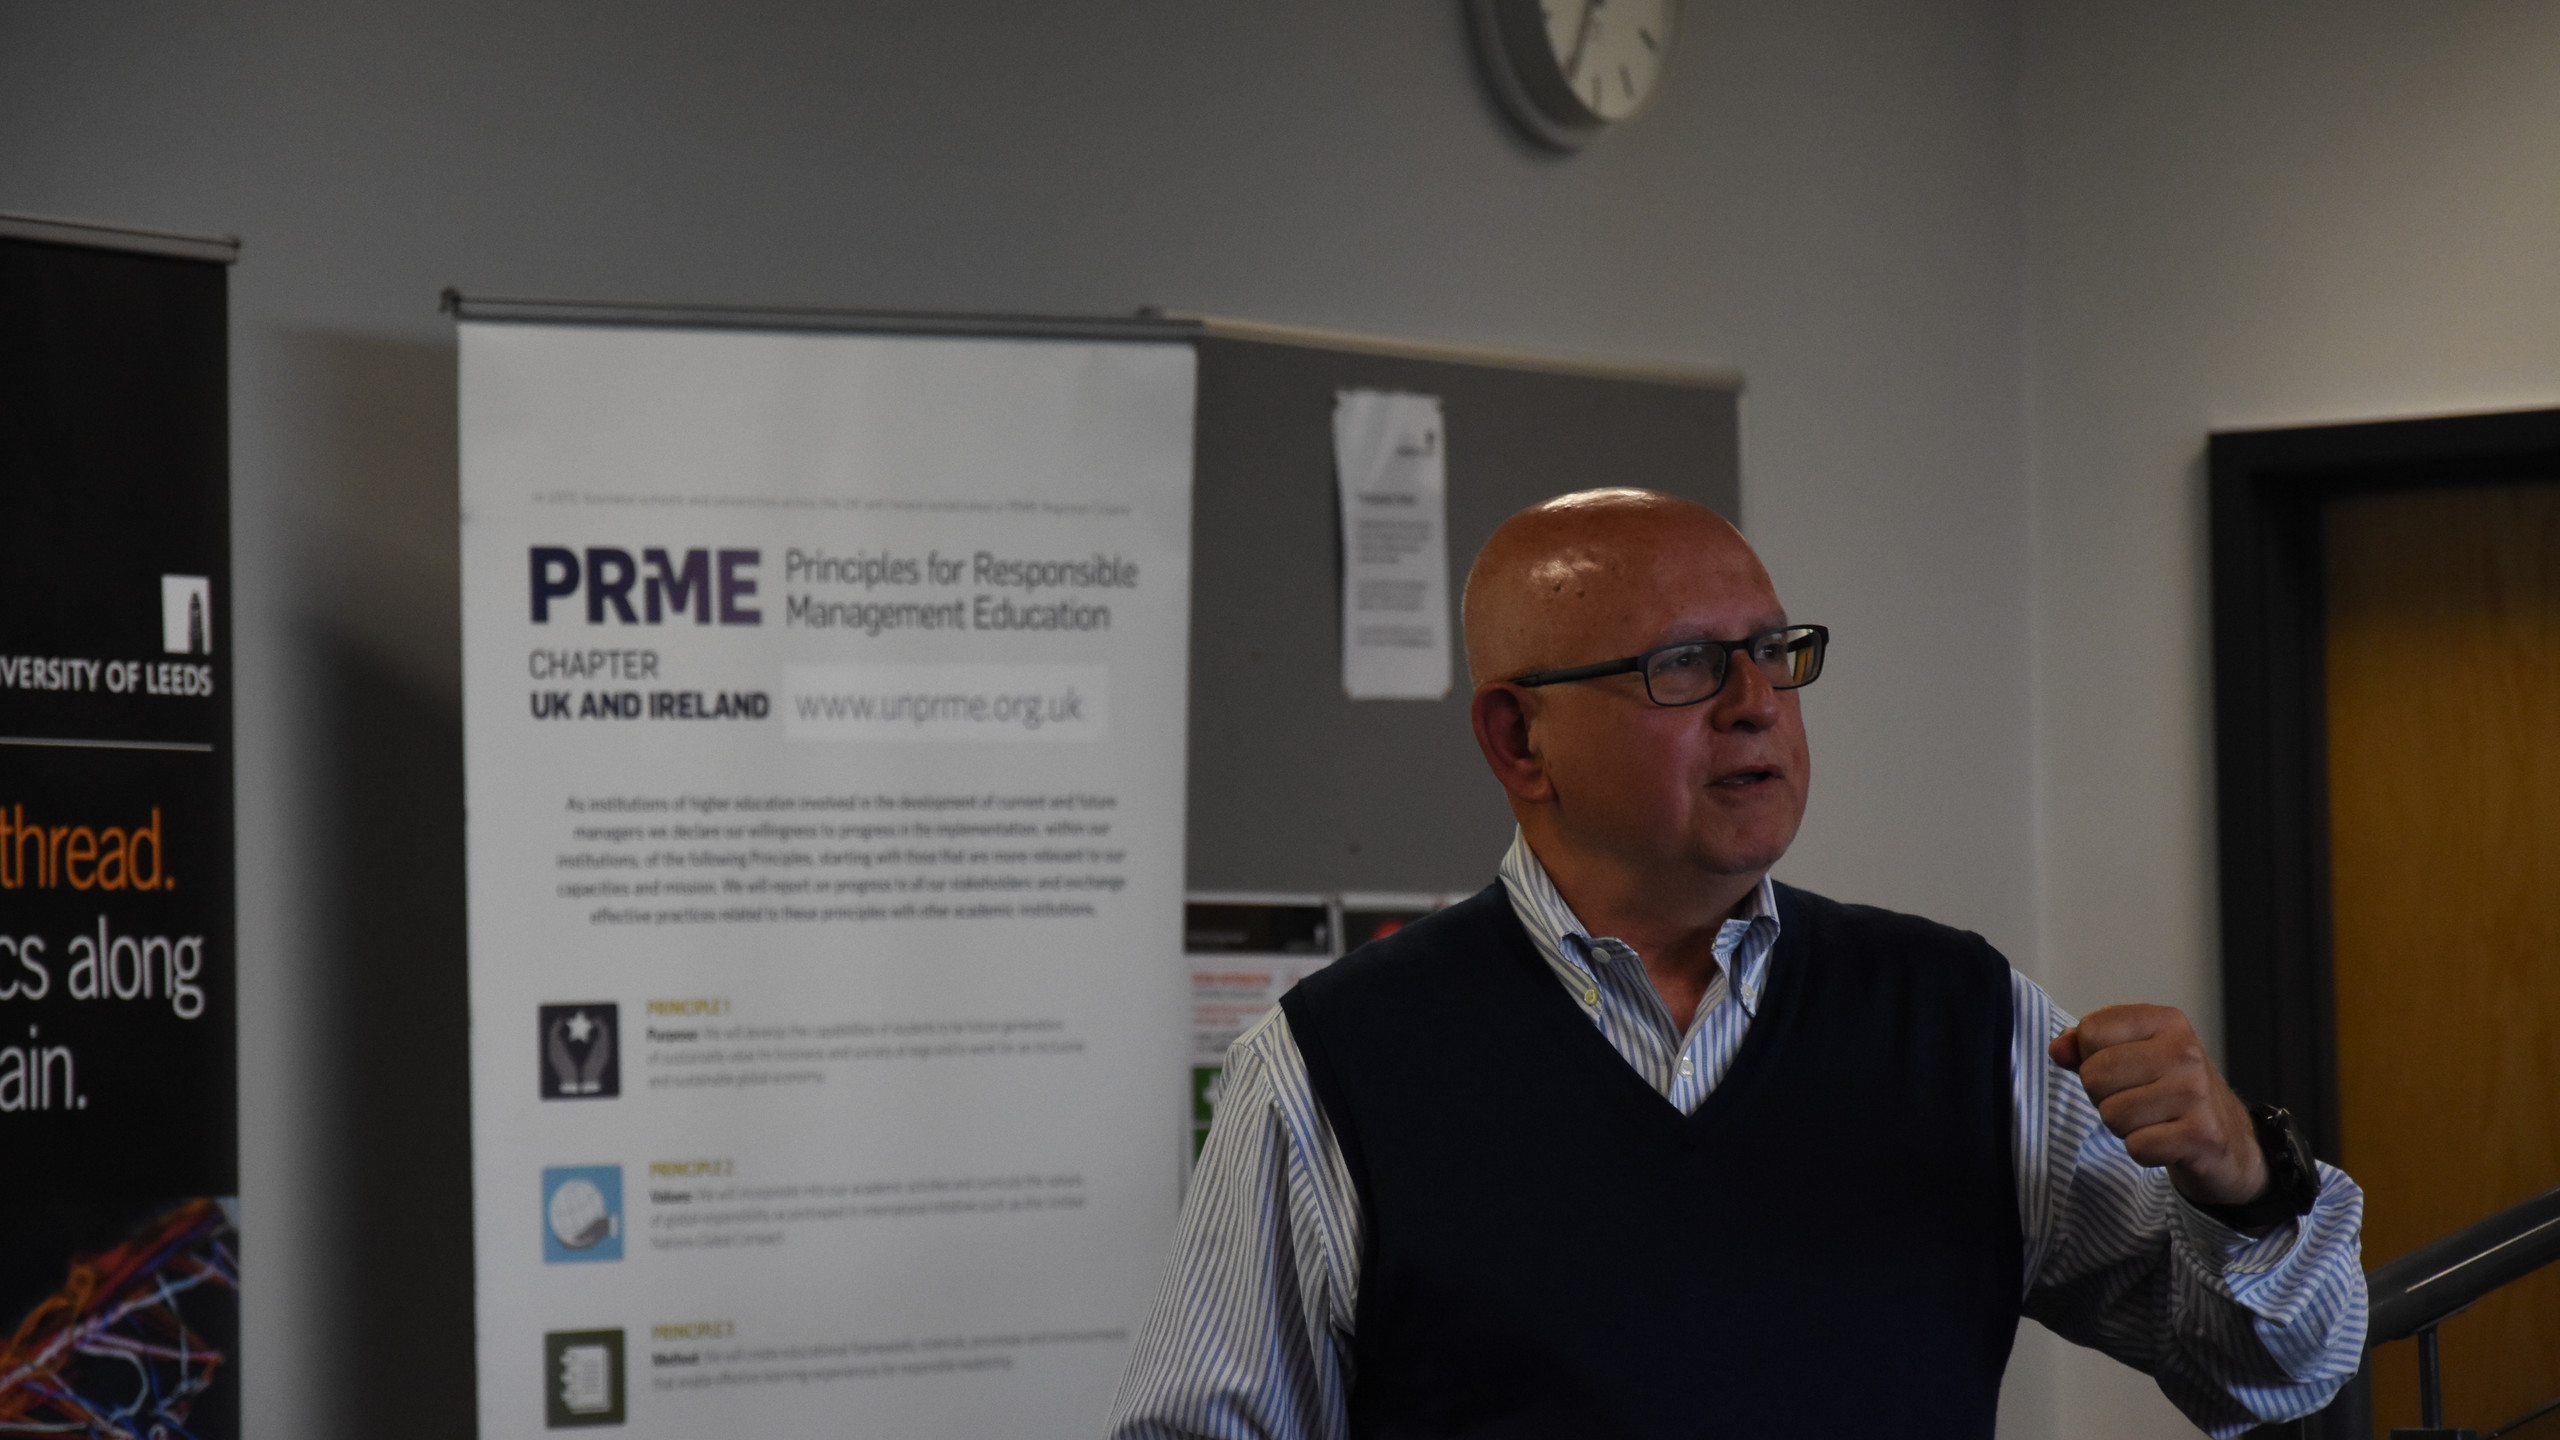 prme-conference-july-2019_48315499701_o.